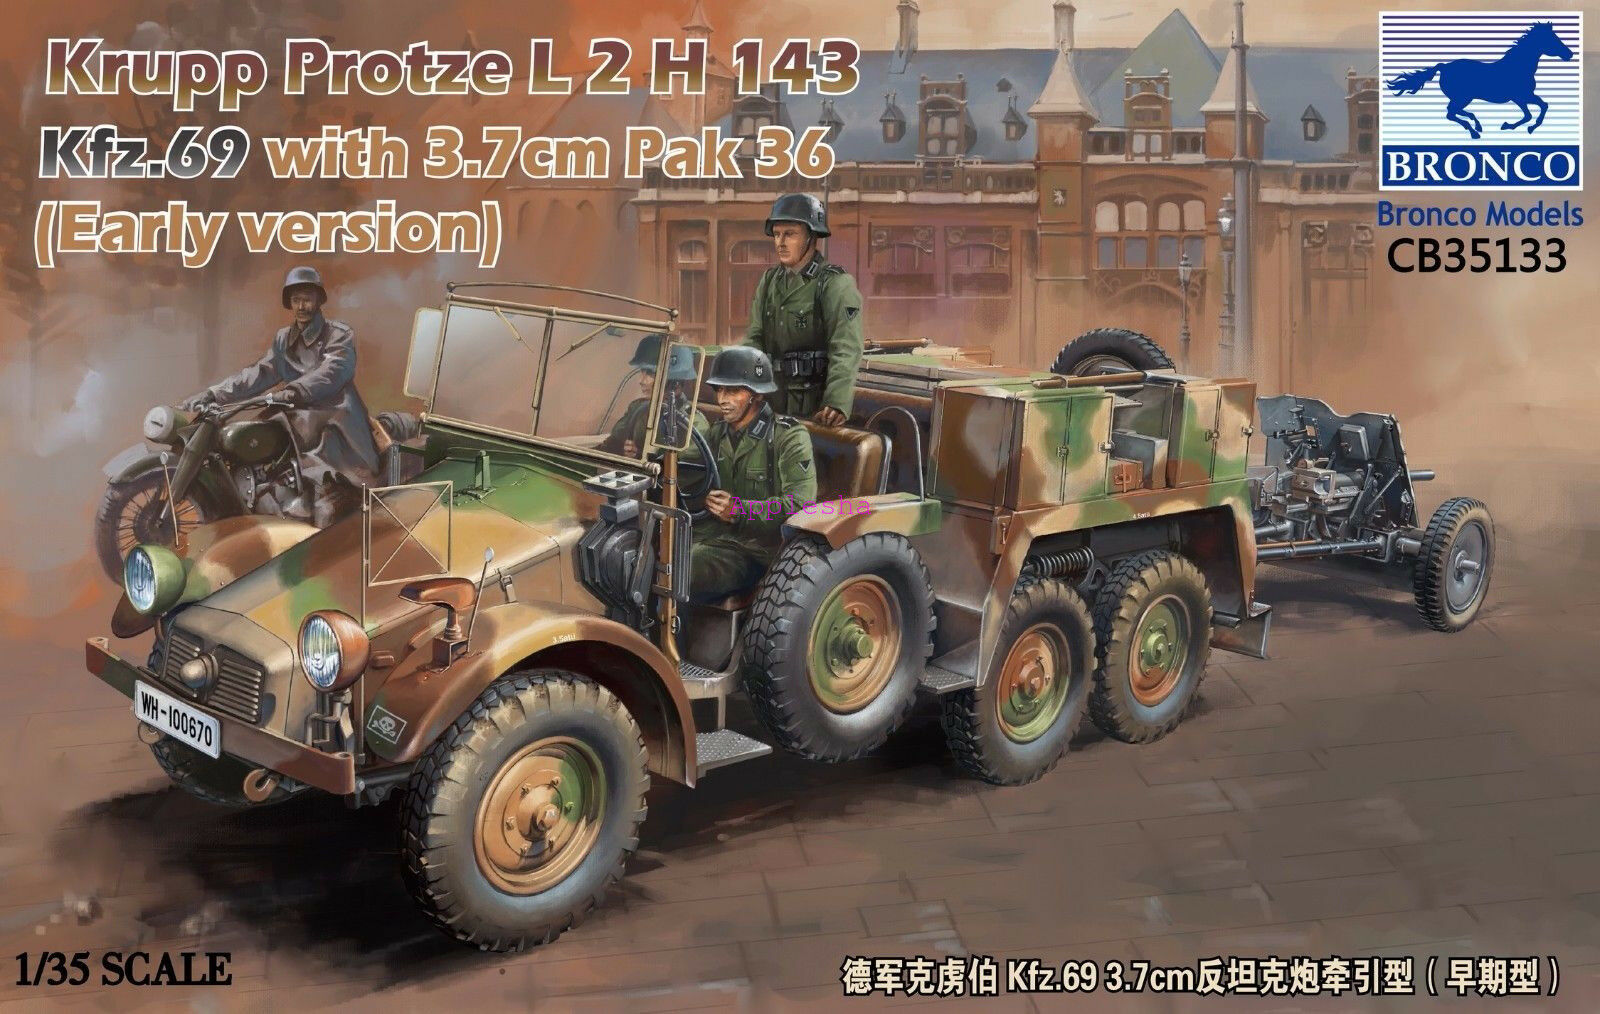 Bronco 1 35 35133 Krupp Predze Kfz.69 w 3.7cm Pak 36(Early Version)